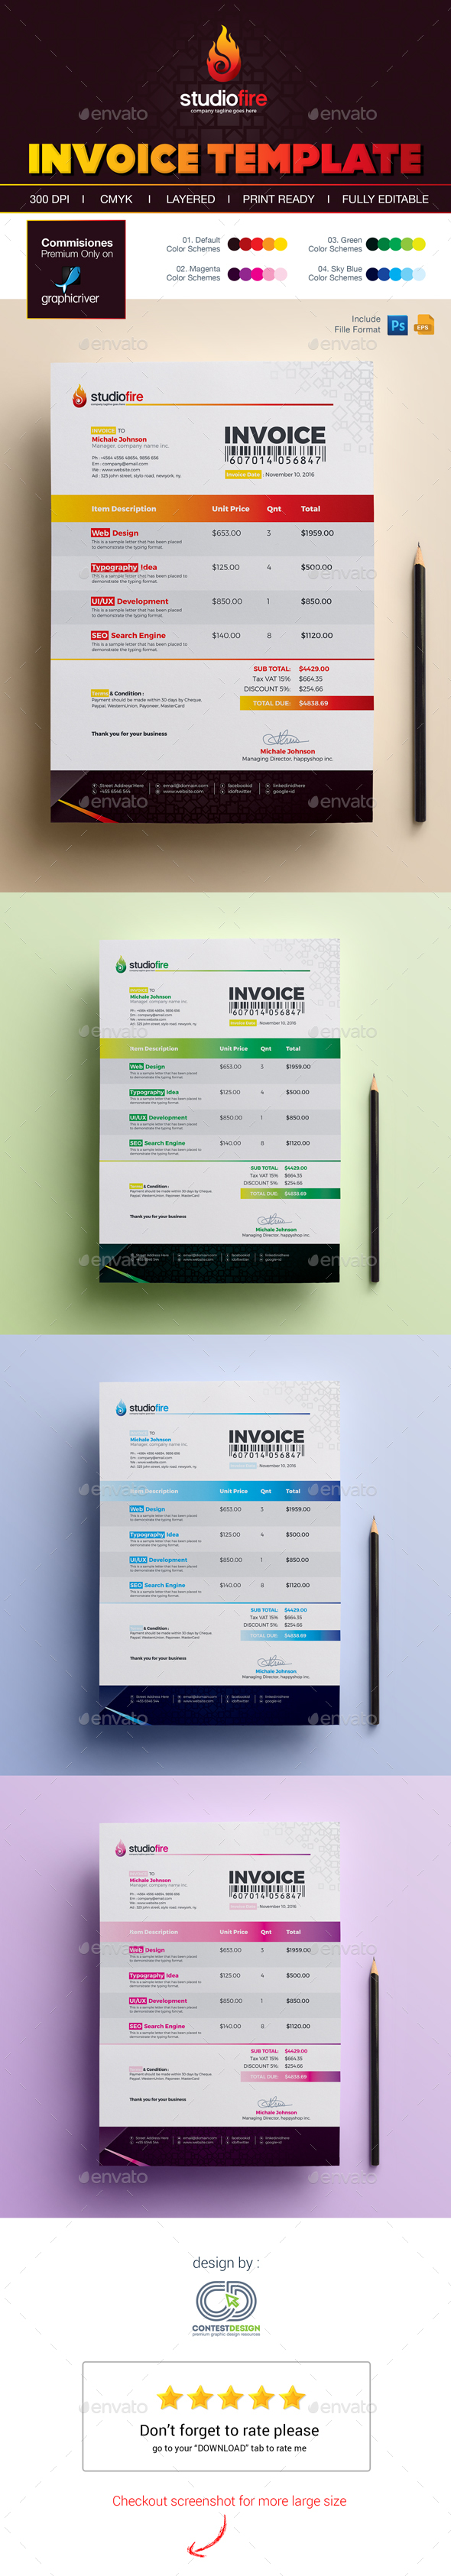 invoice template by contestdesign | graphicriver, Invoice templates